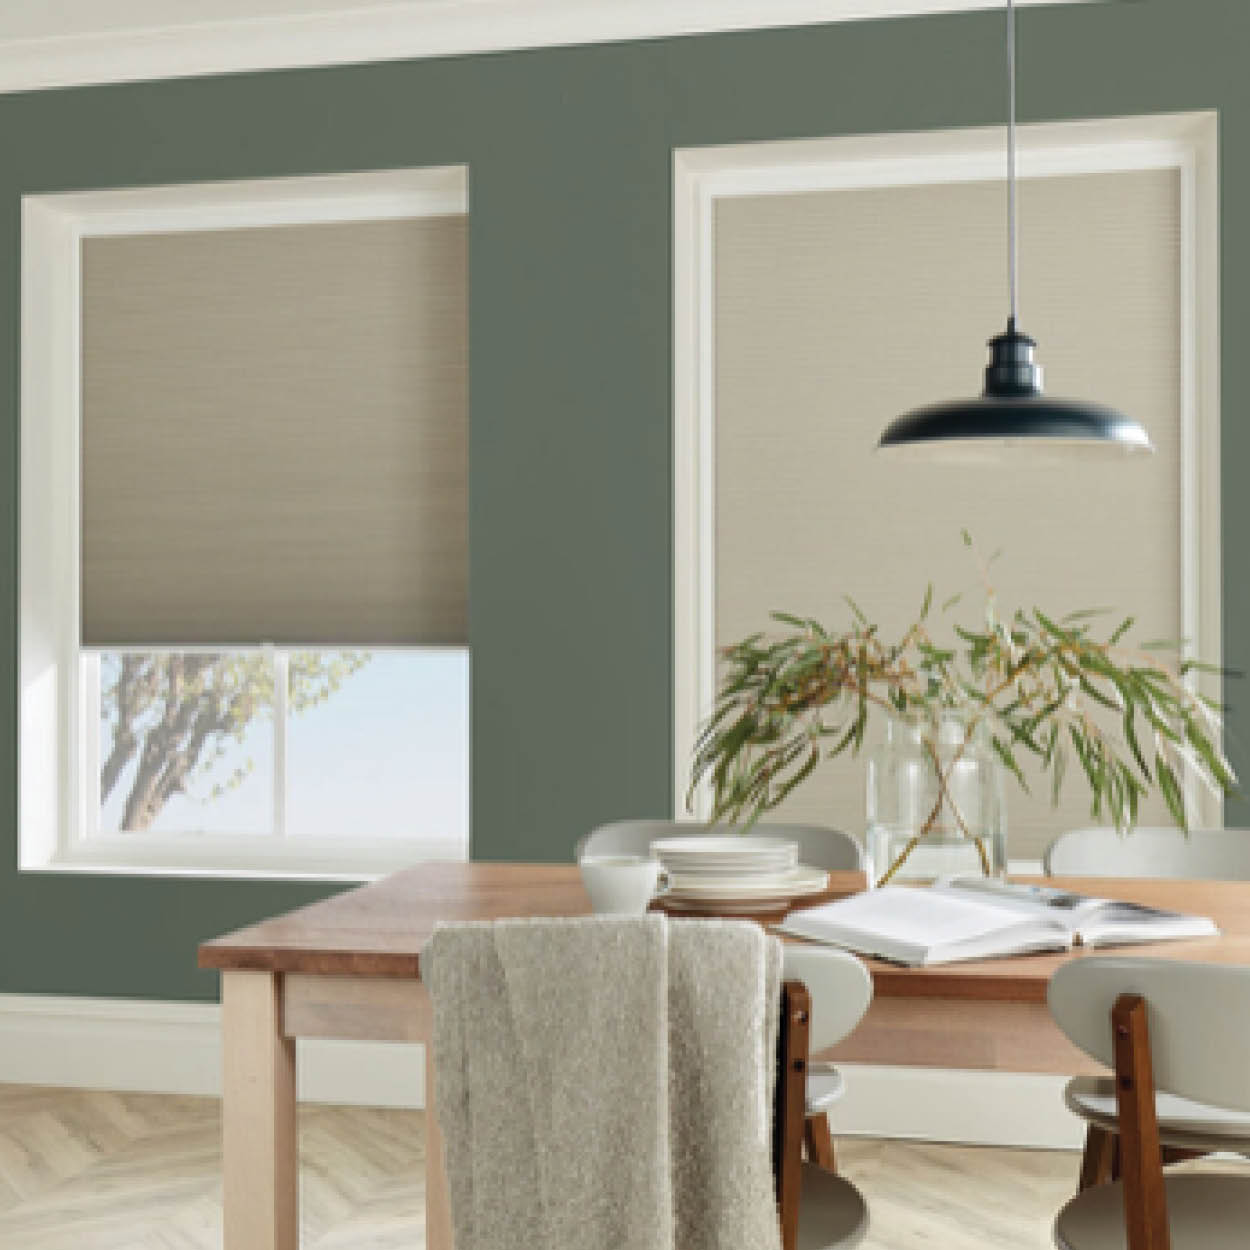 Keep Your Home Warmer This Season with Cellular Blinds